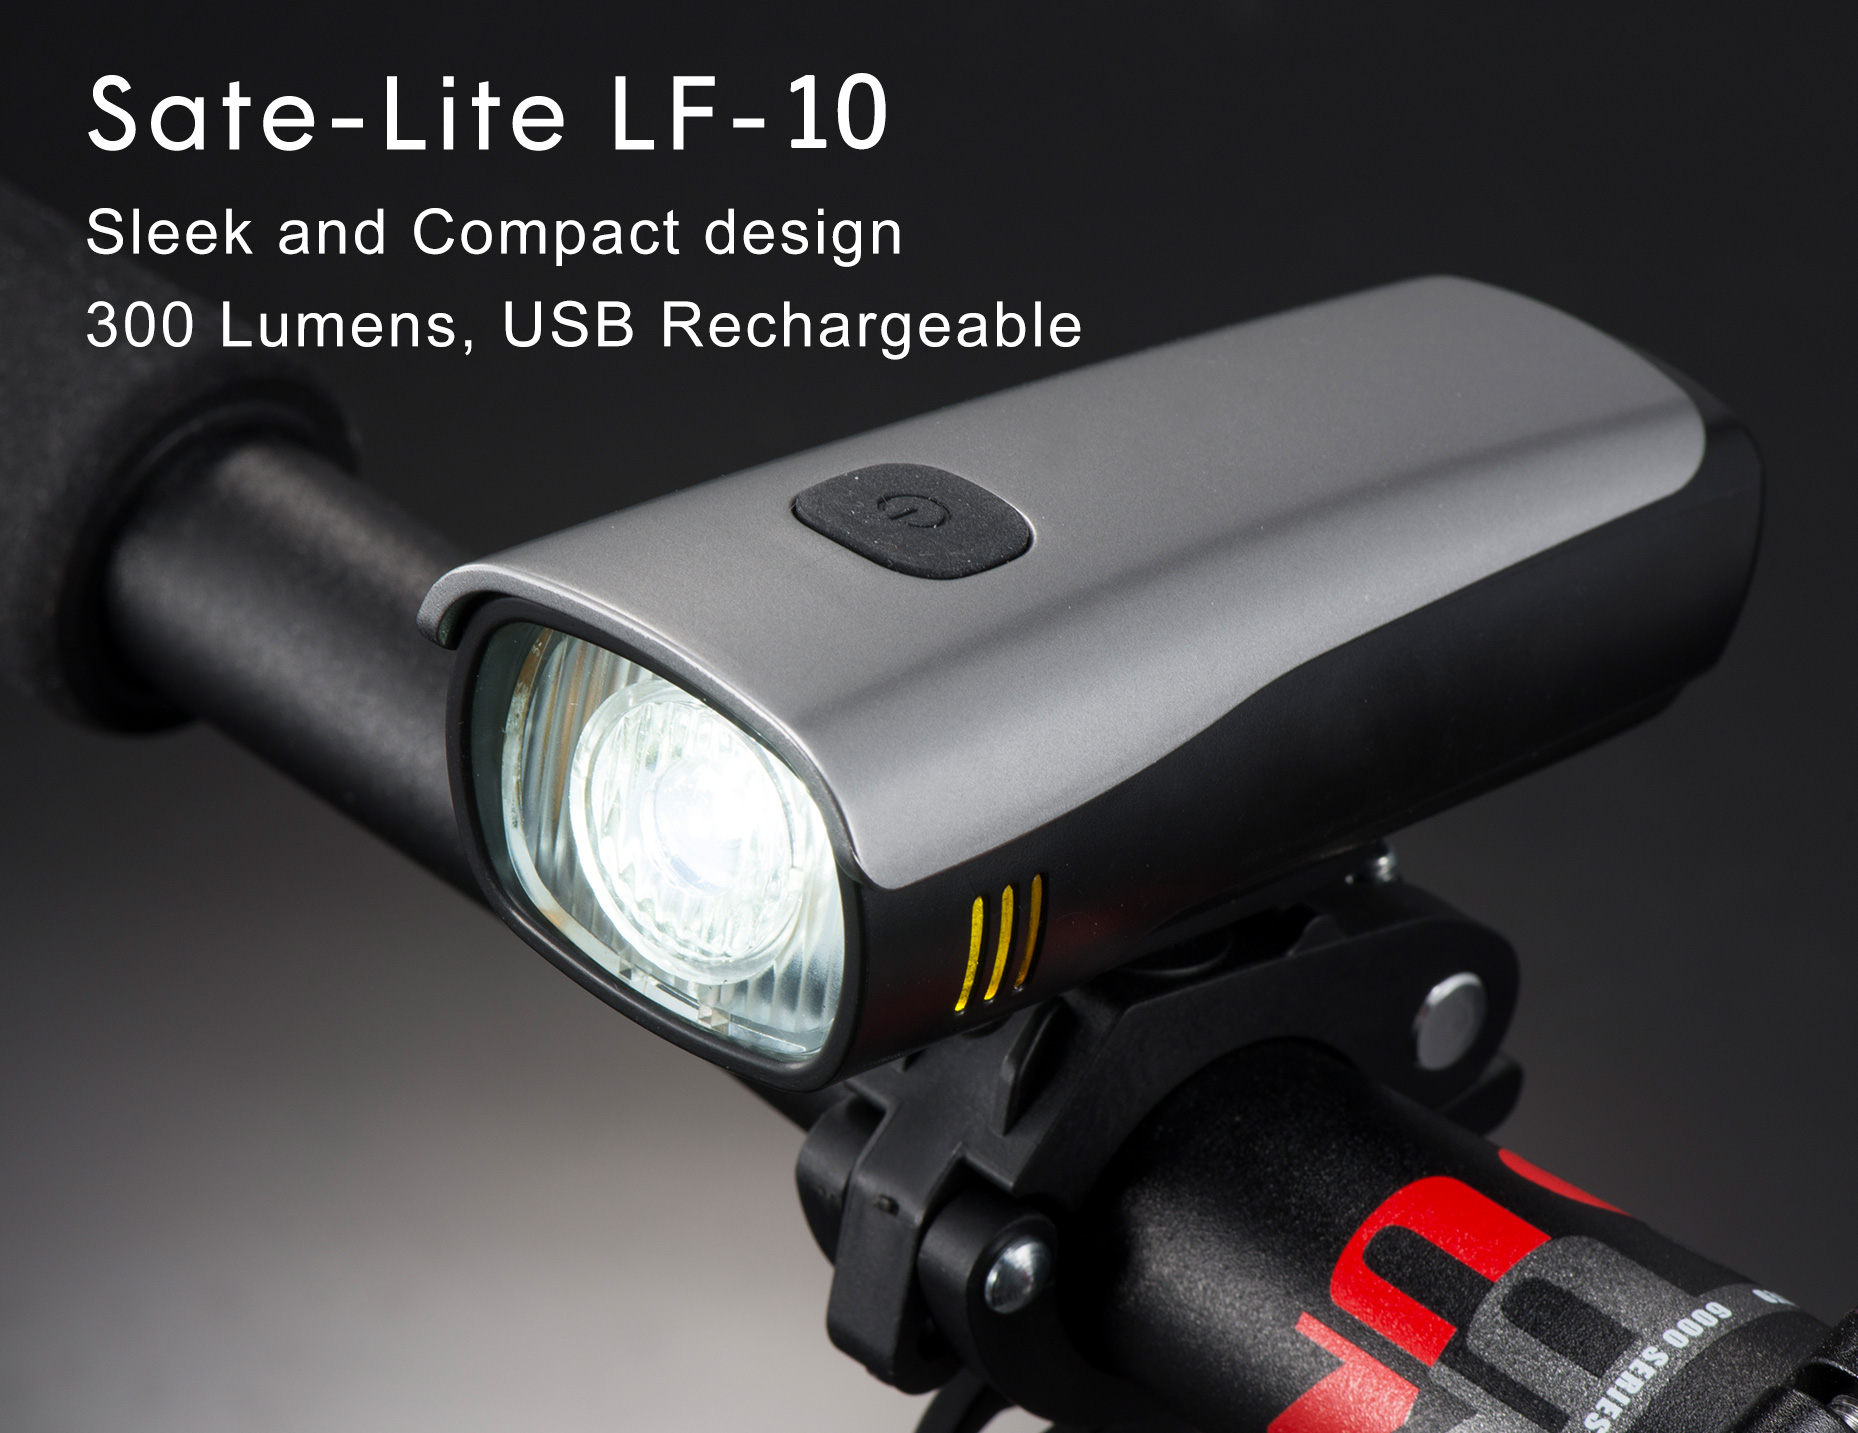 Sate-Lite StVZO approved New Bicycle Headlight with USB Rechargeable Bike Light LF-10